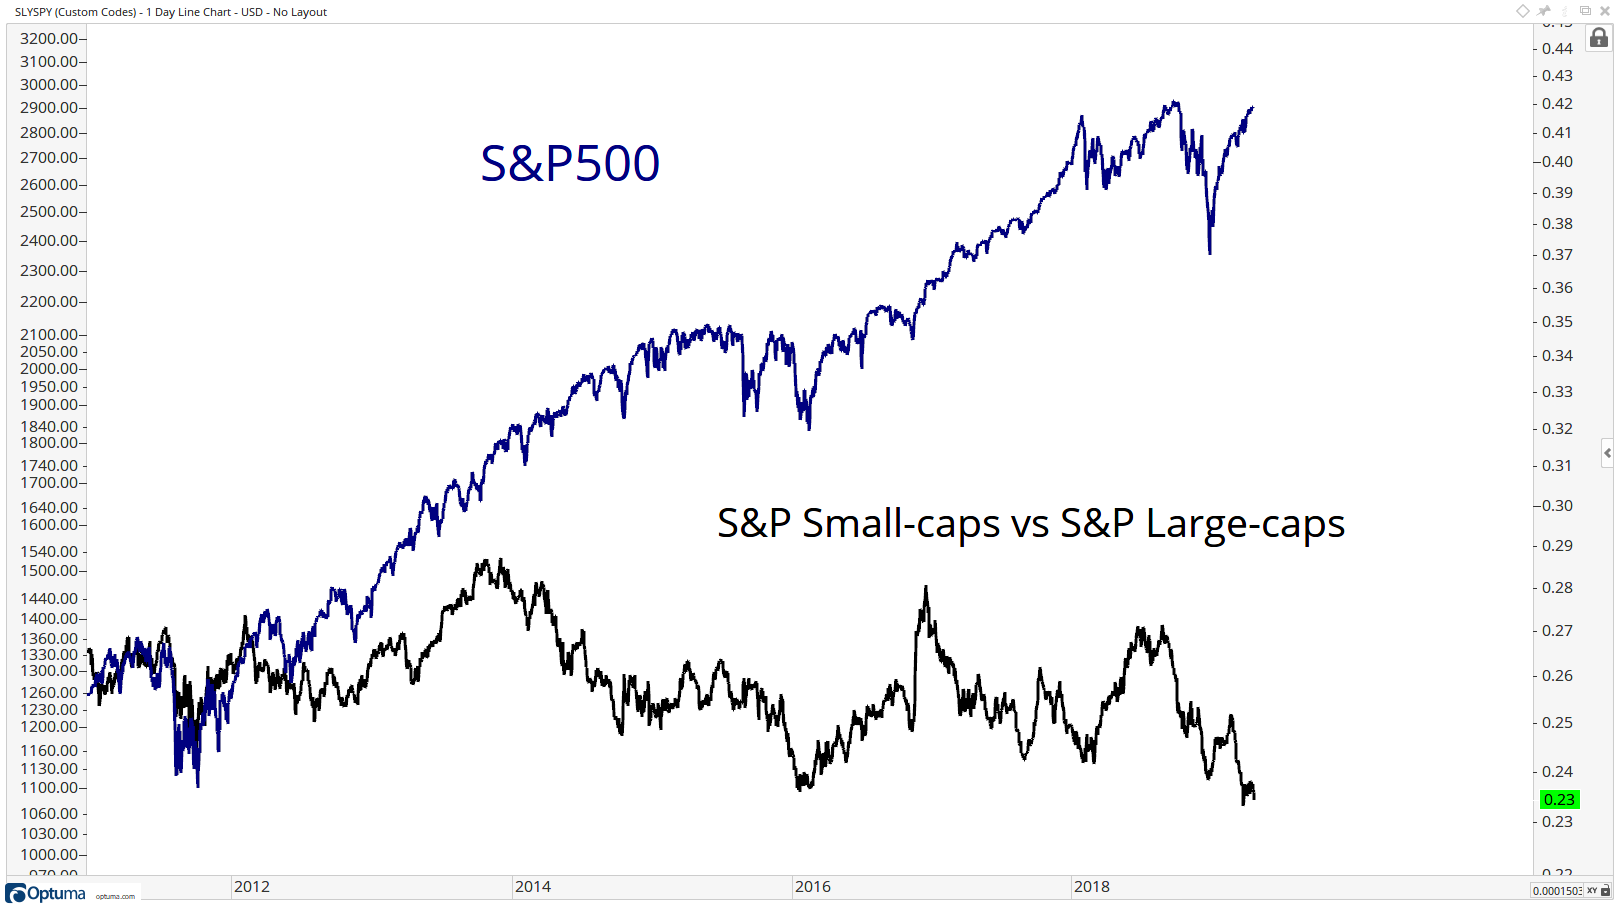 Long-term comparison of the performance of small-cap stocks with the S&P 500 Index.